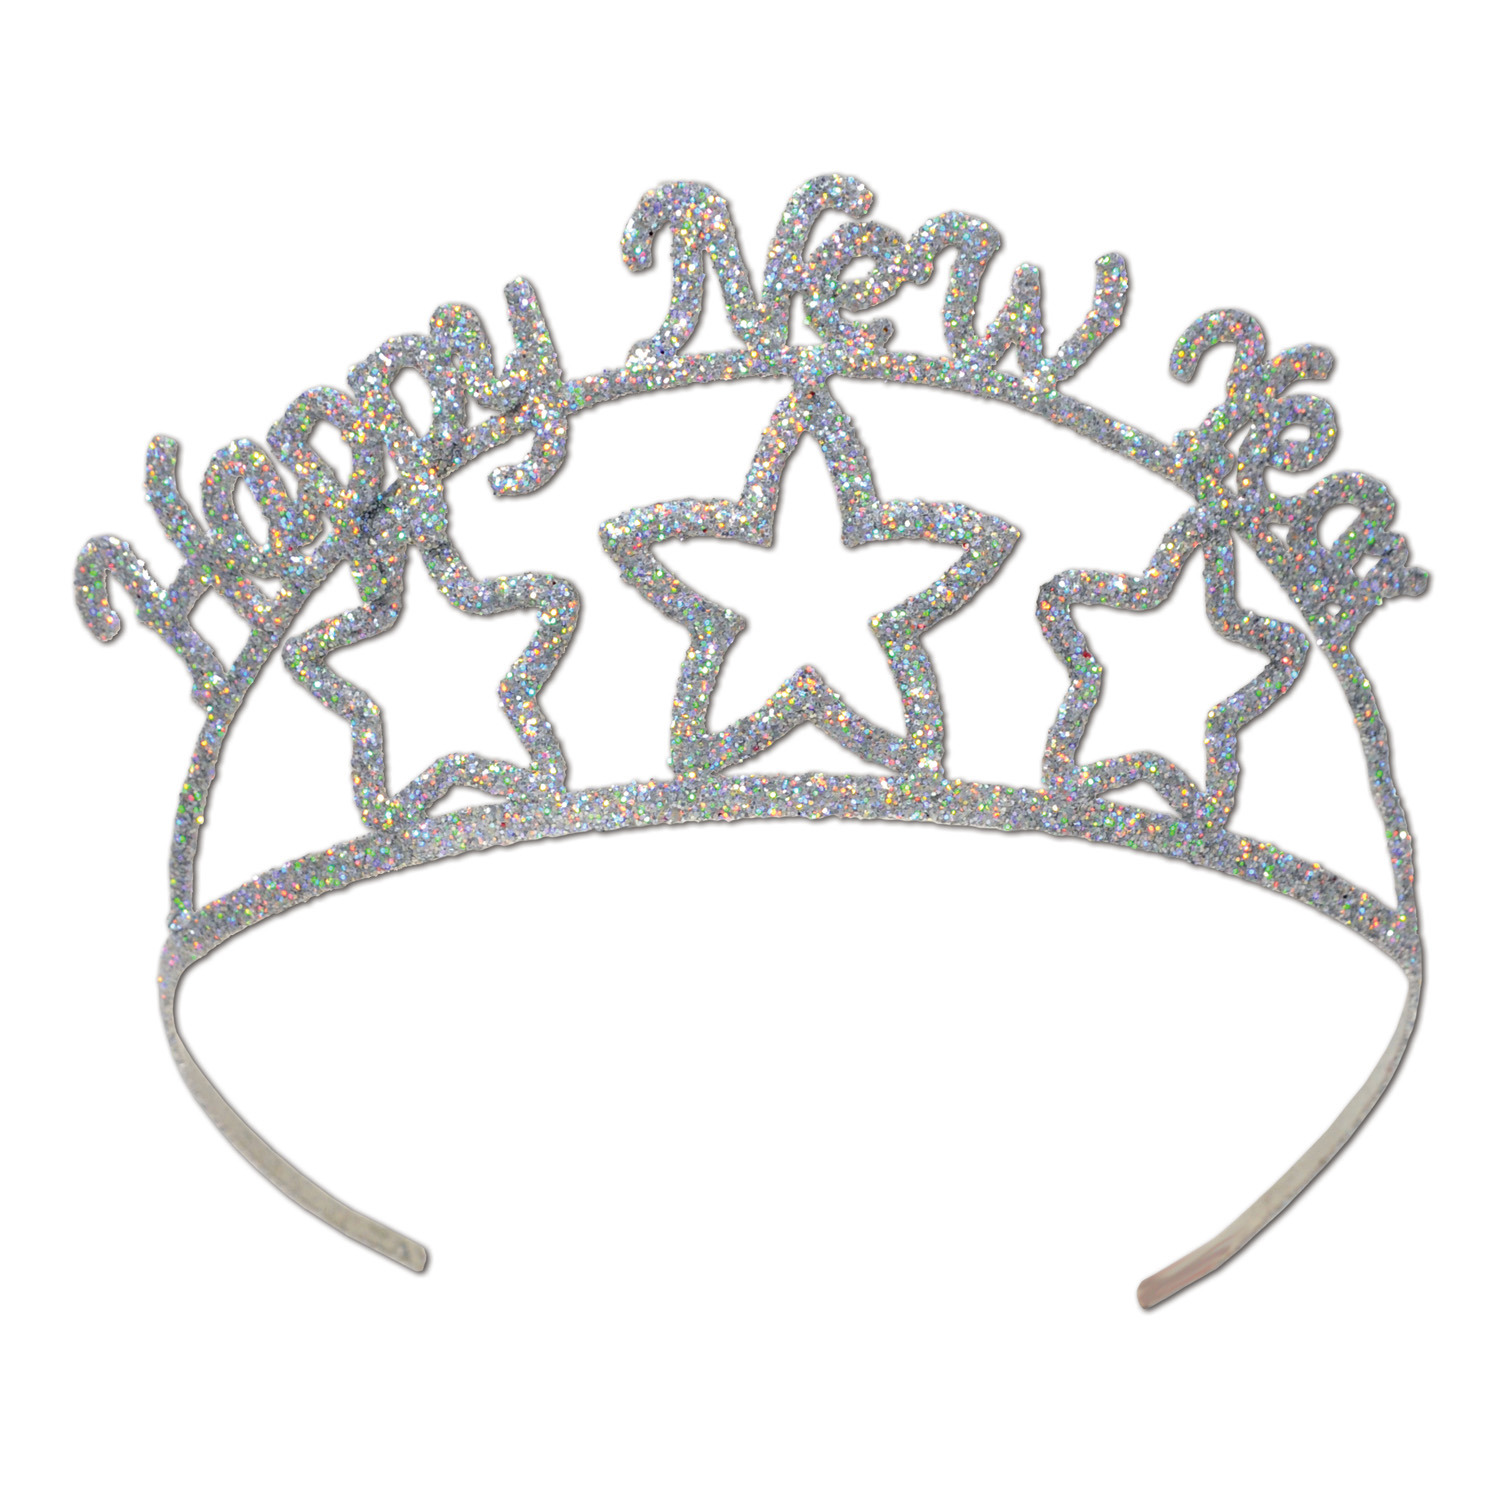 Glittered Metal Happy New Year Tiara (Pack of 6) glittered, metal, happy, new, year, tiara, party, eve, sparkly, hotel, casino, restaurant, bar, pack